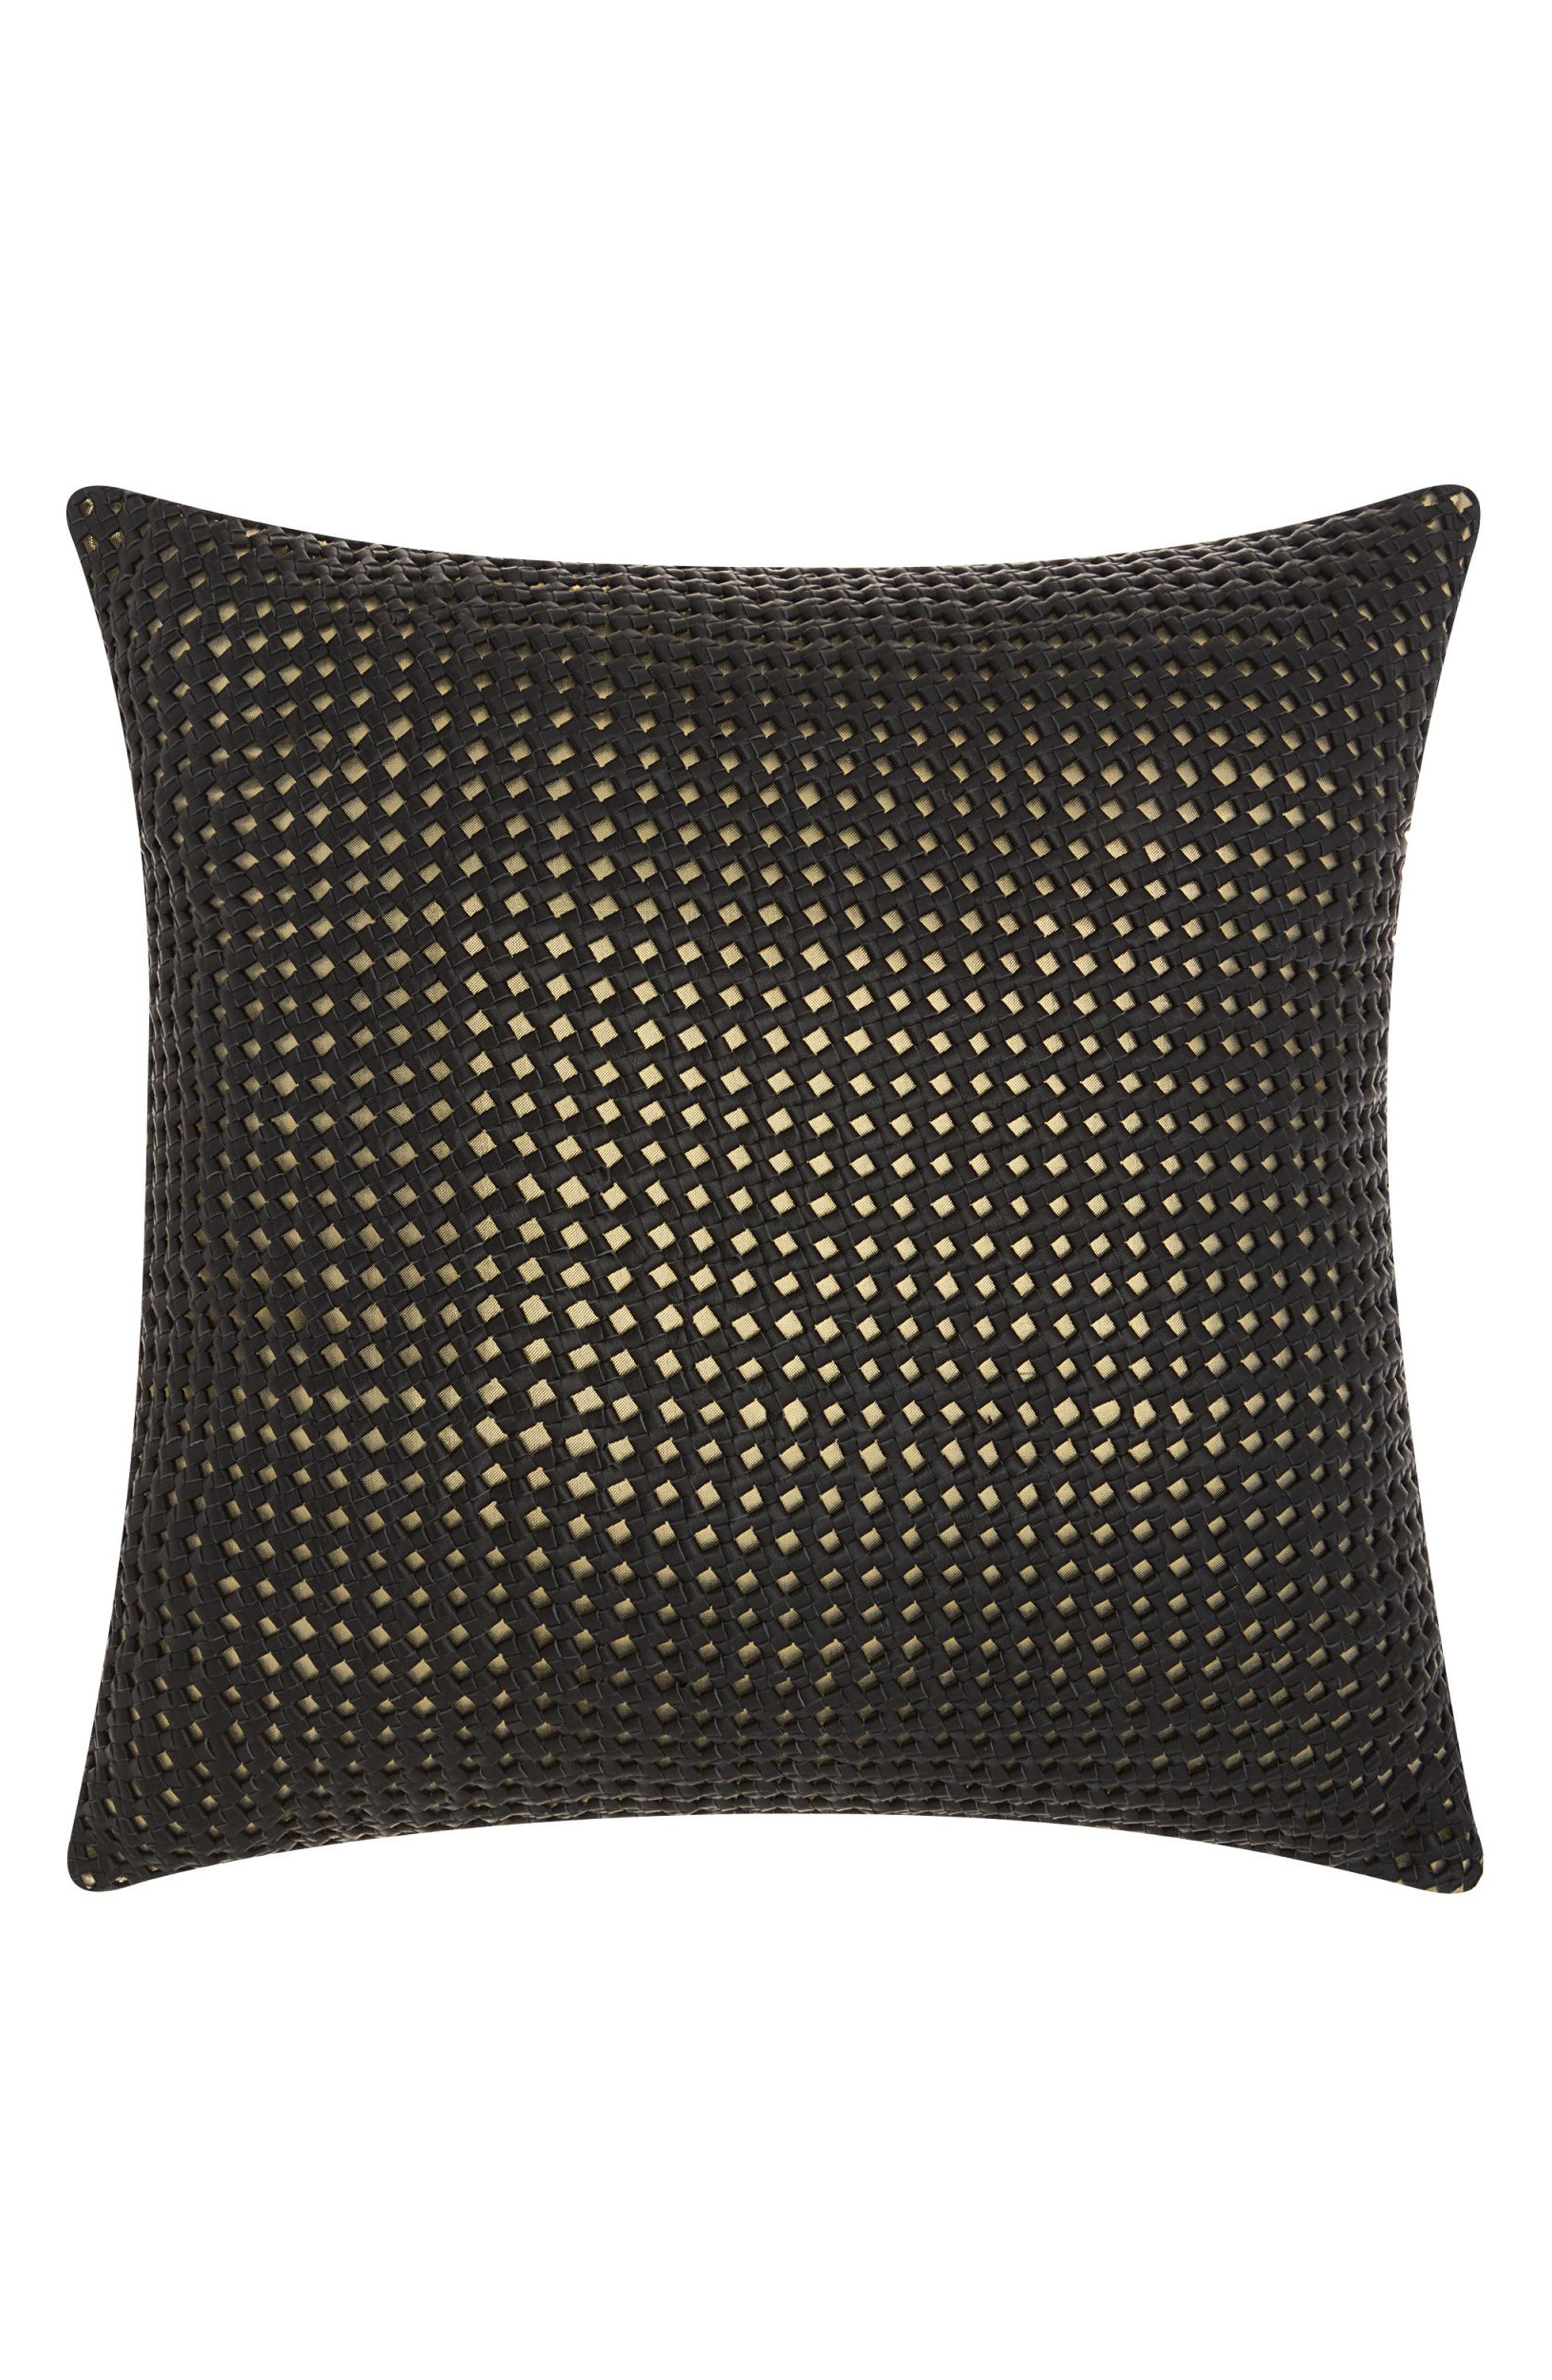 Woven Leather Accent Pillow,                         Main,                         color, 002